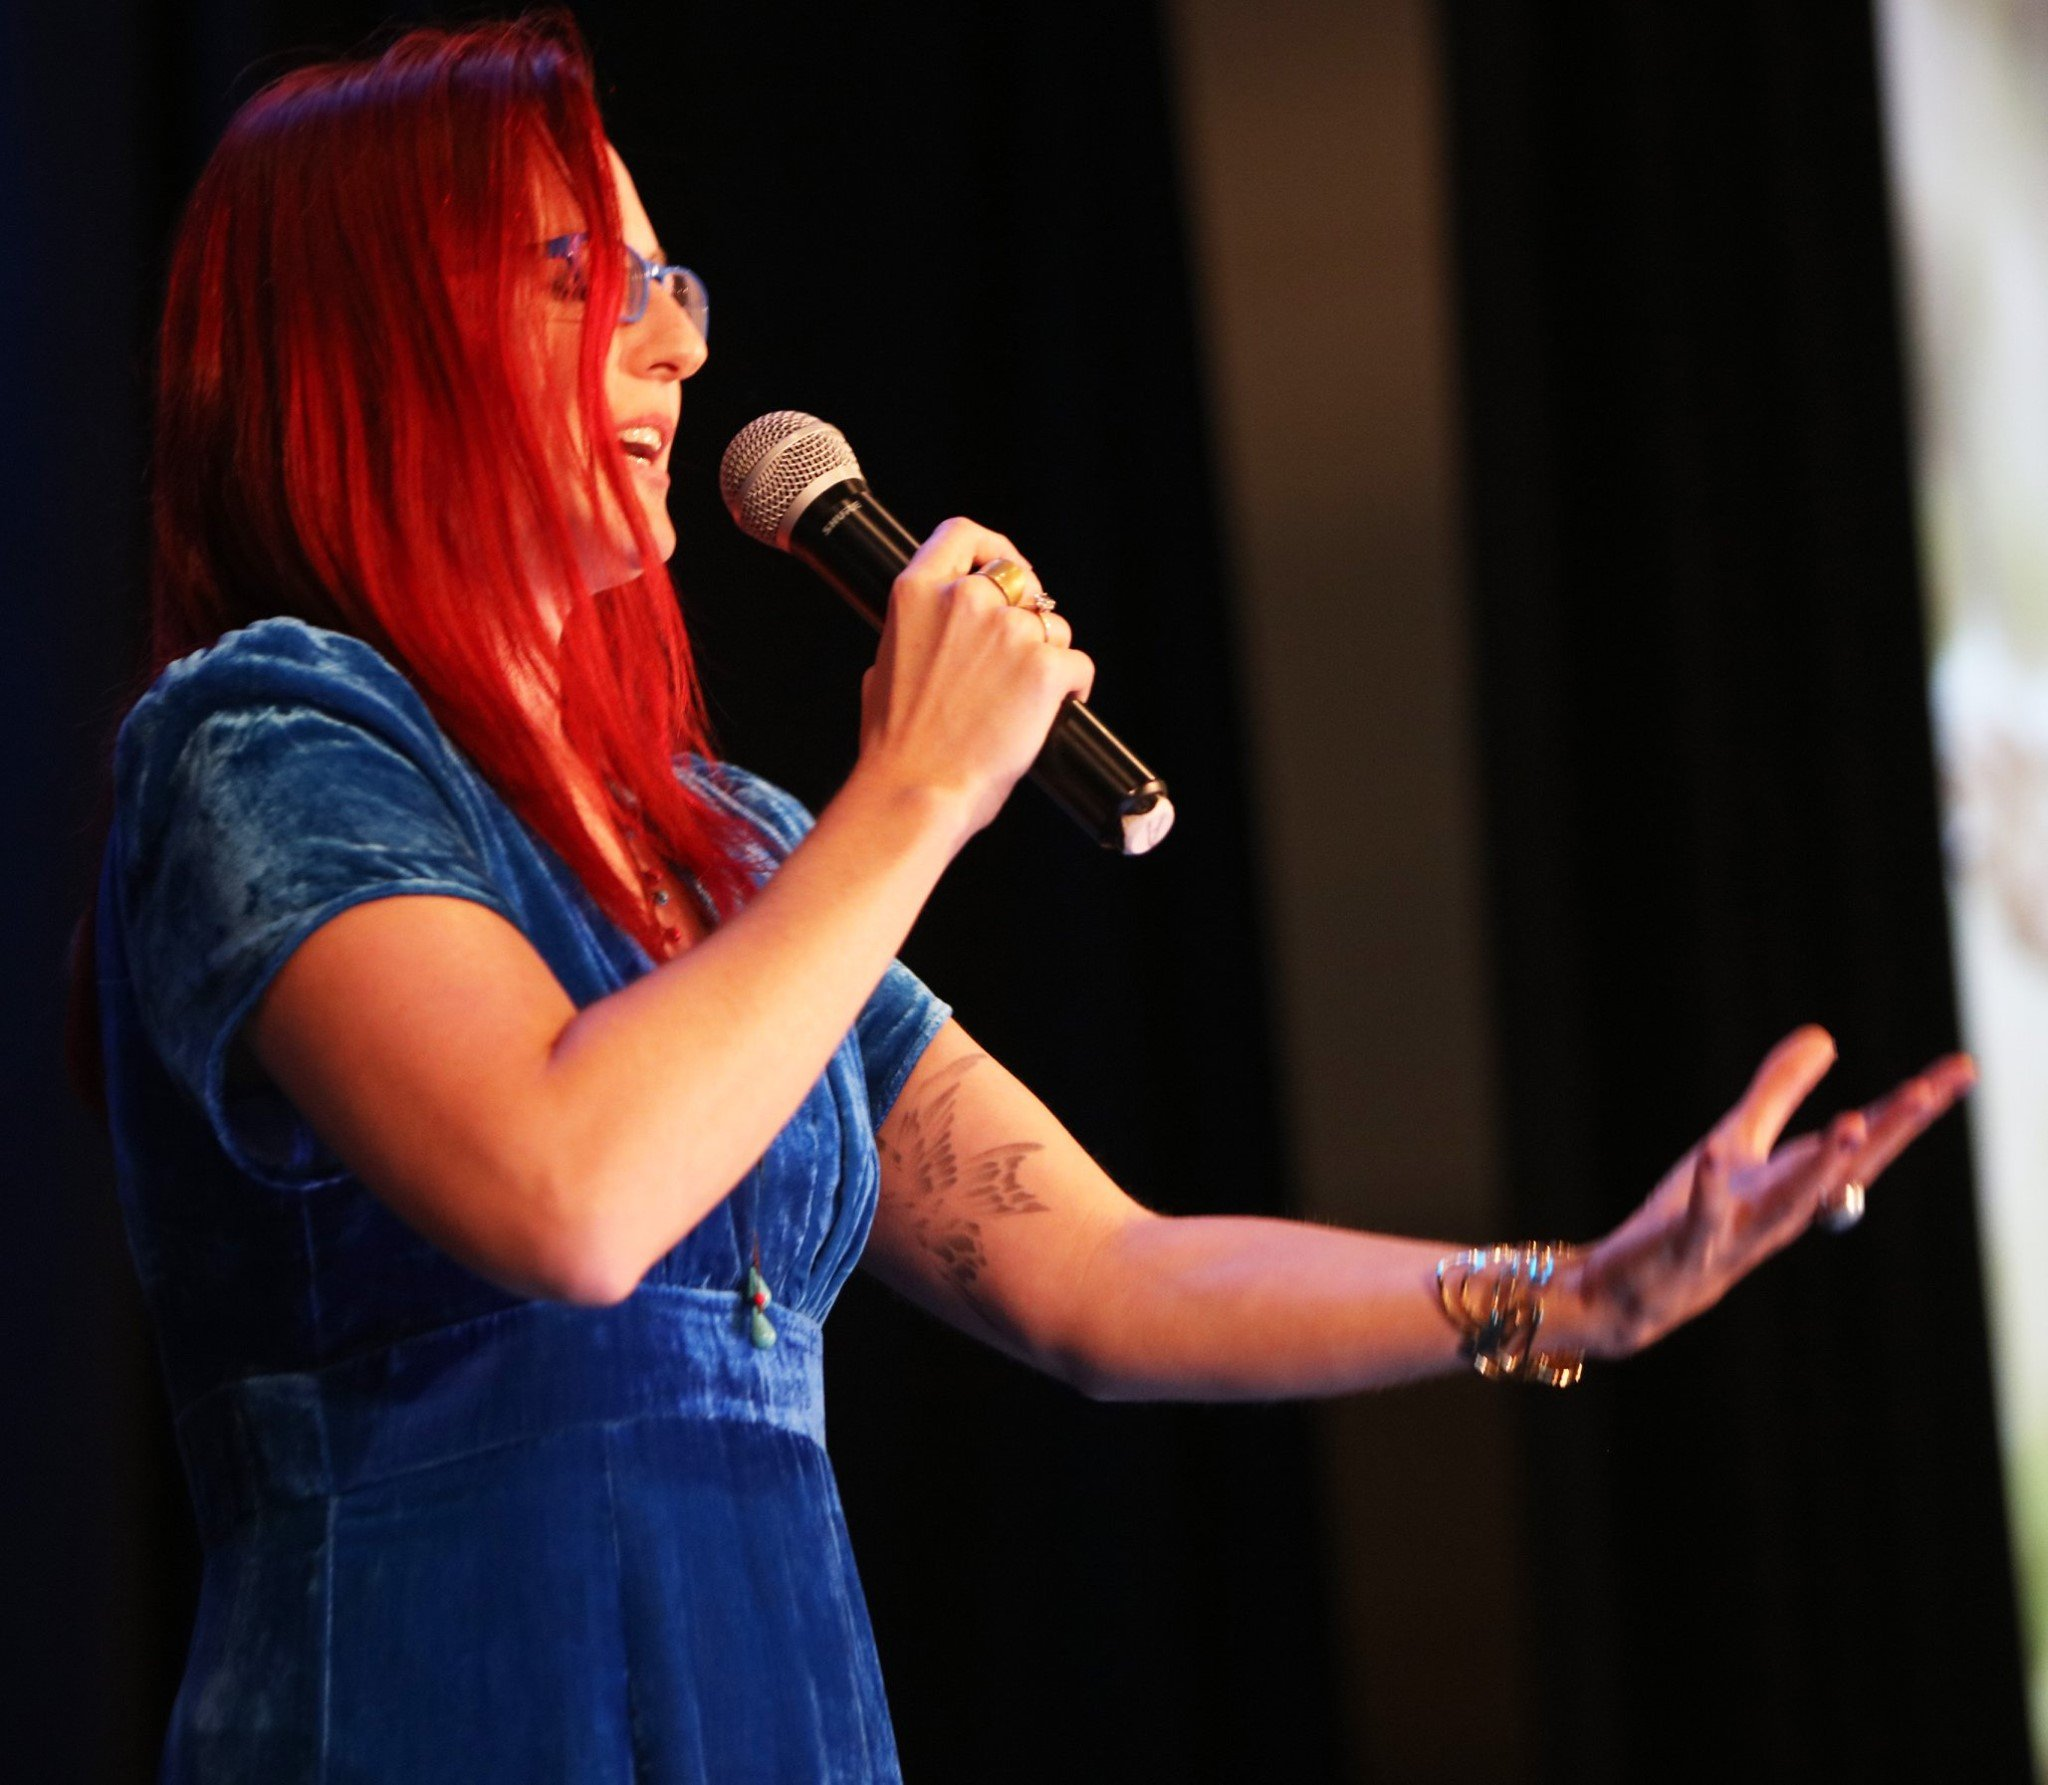 Stasha on stage speaking into microphone in one hand, other open wide to audience